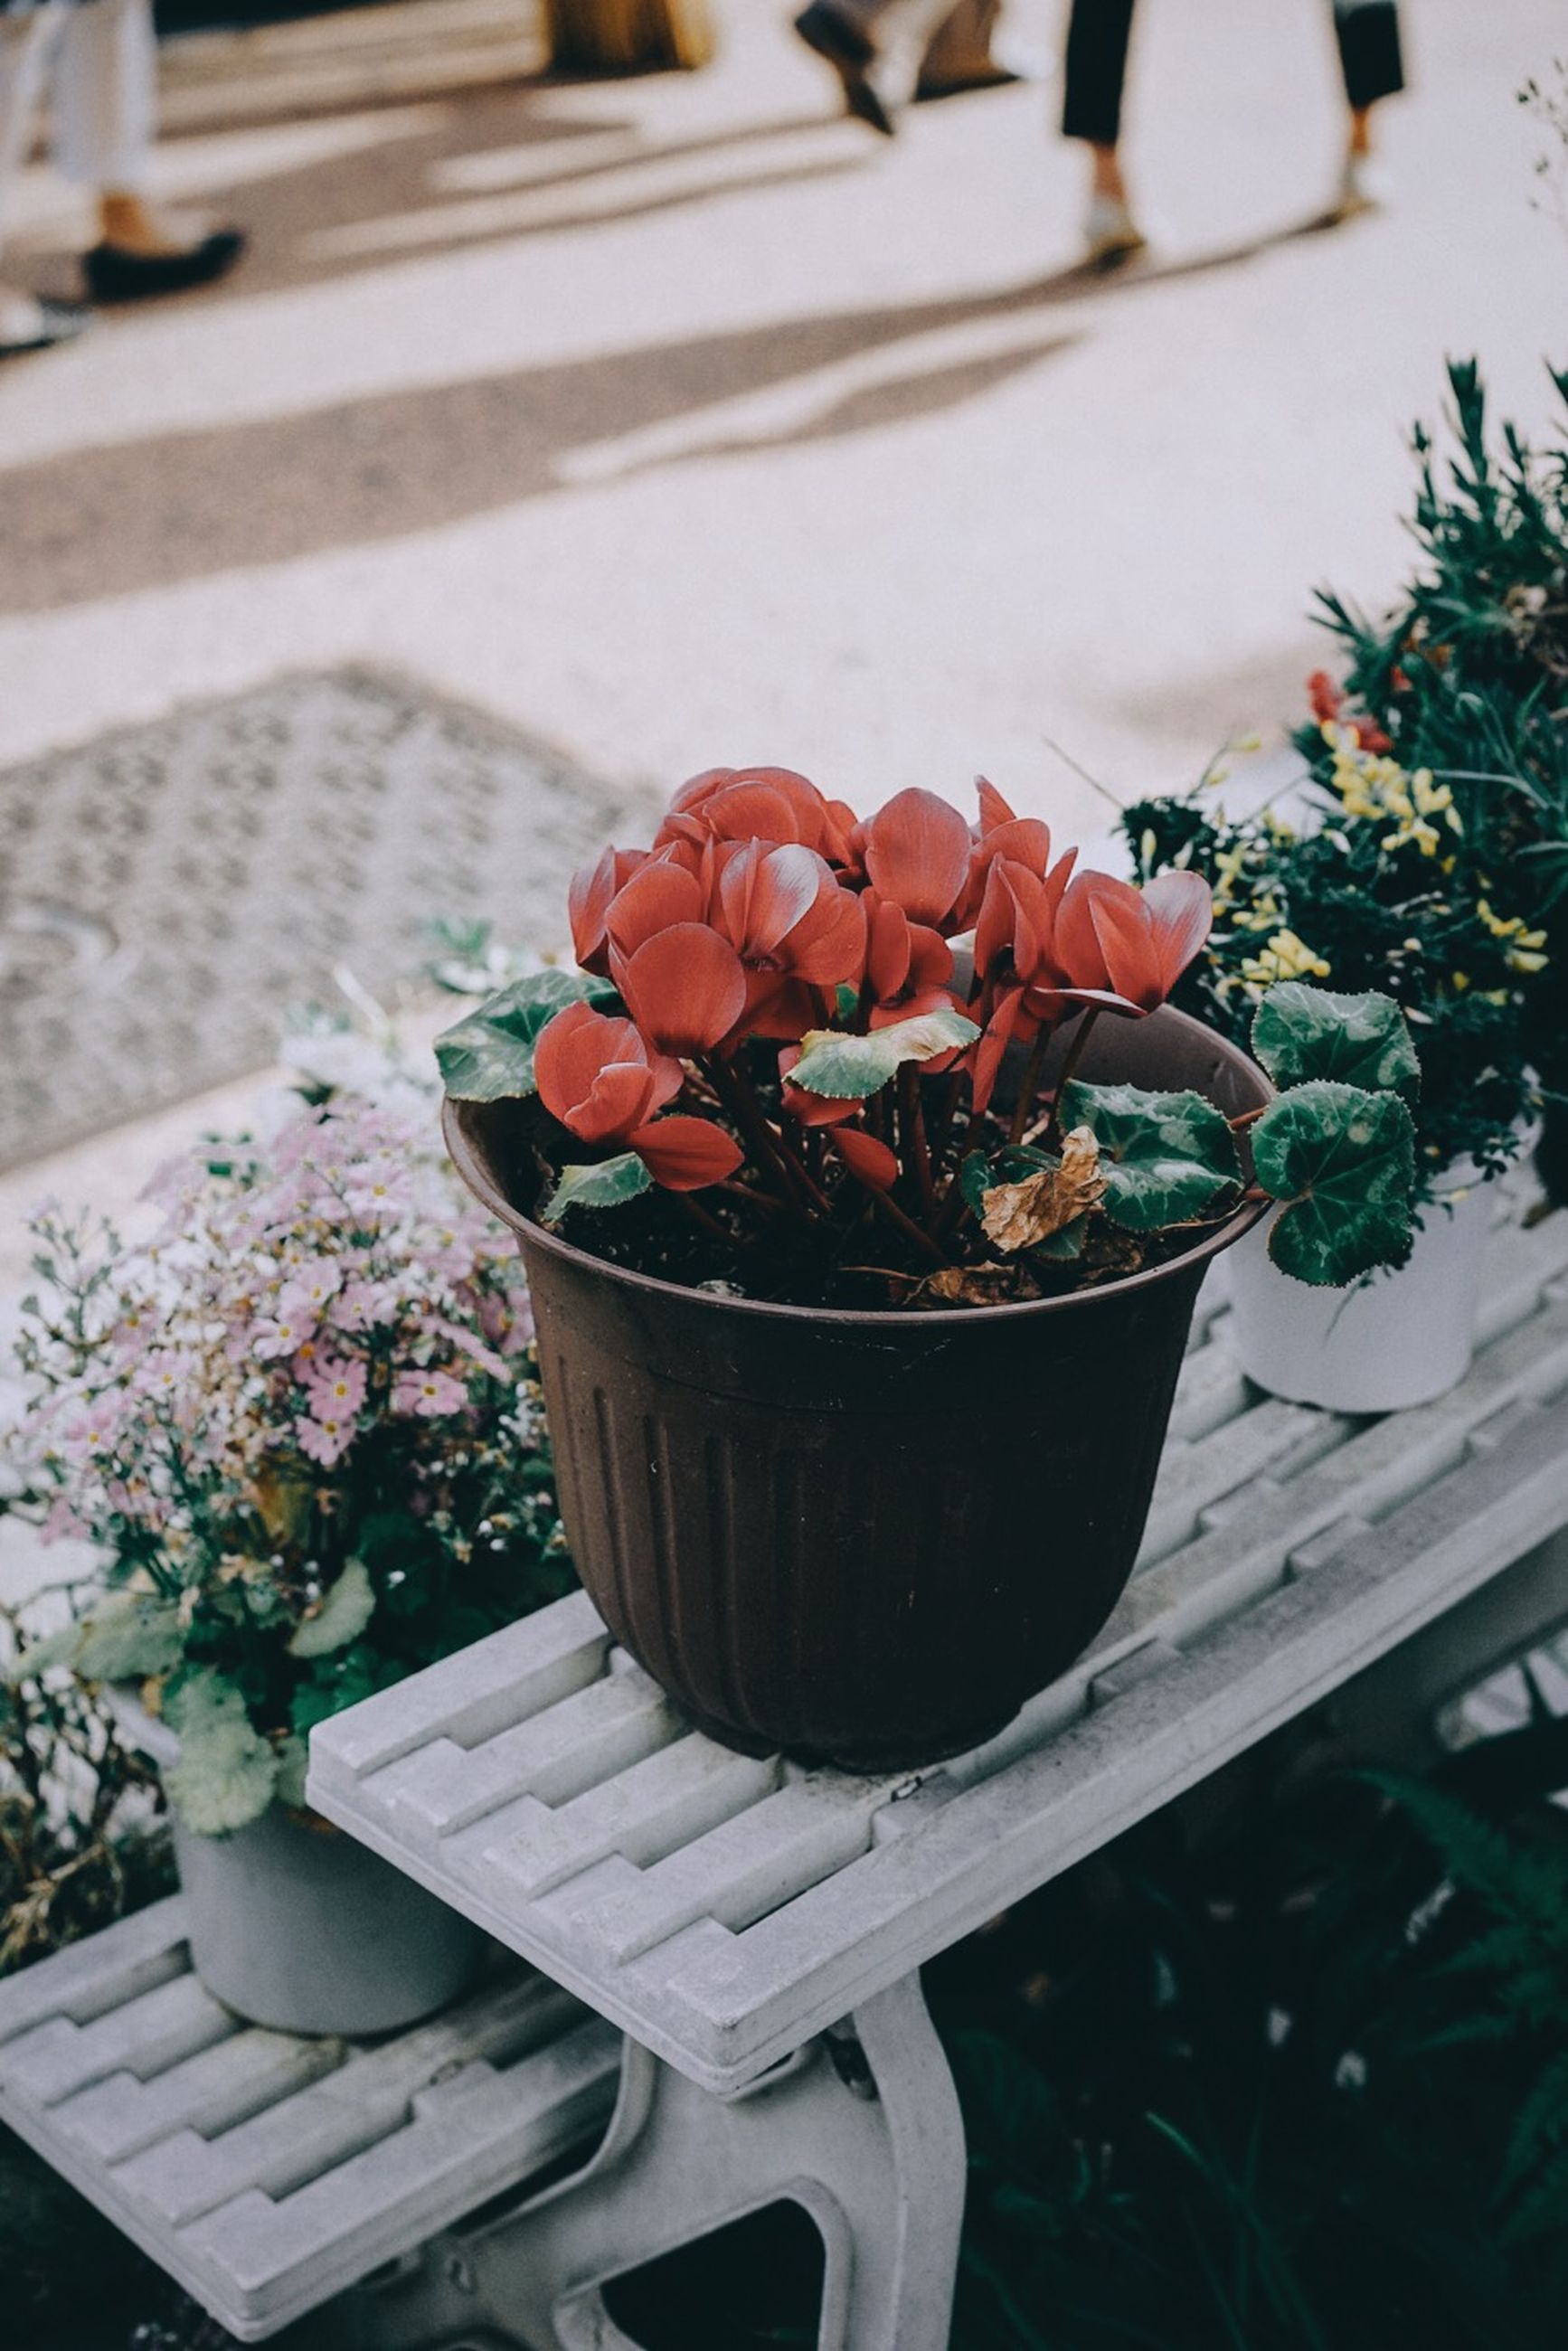 freshness, food and drink, focus on foreground, close-up, flower, red, potted plant, leaf, food, plant, growth, outdoors, selective focus, day, no people, table, fruit, nature, healthy eating, sunlight